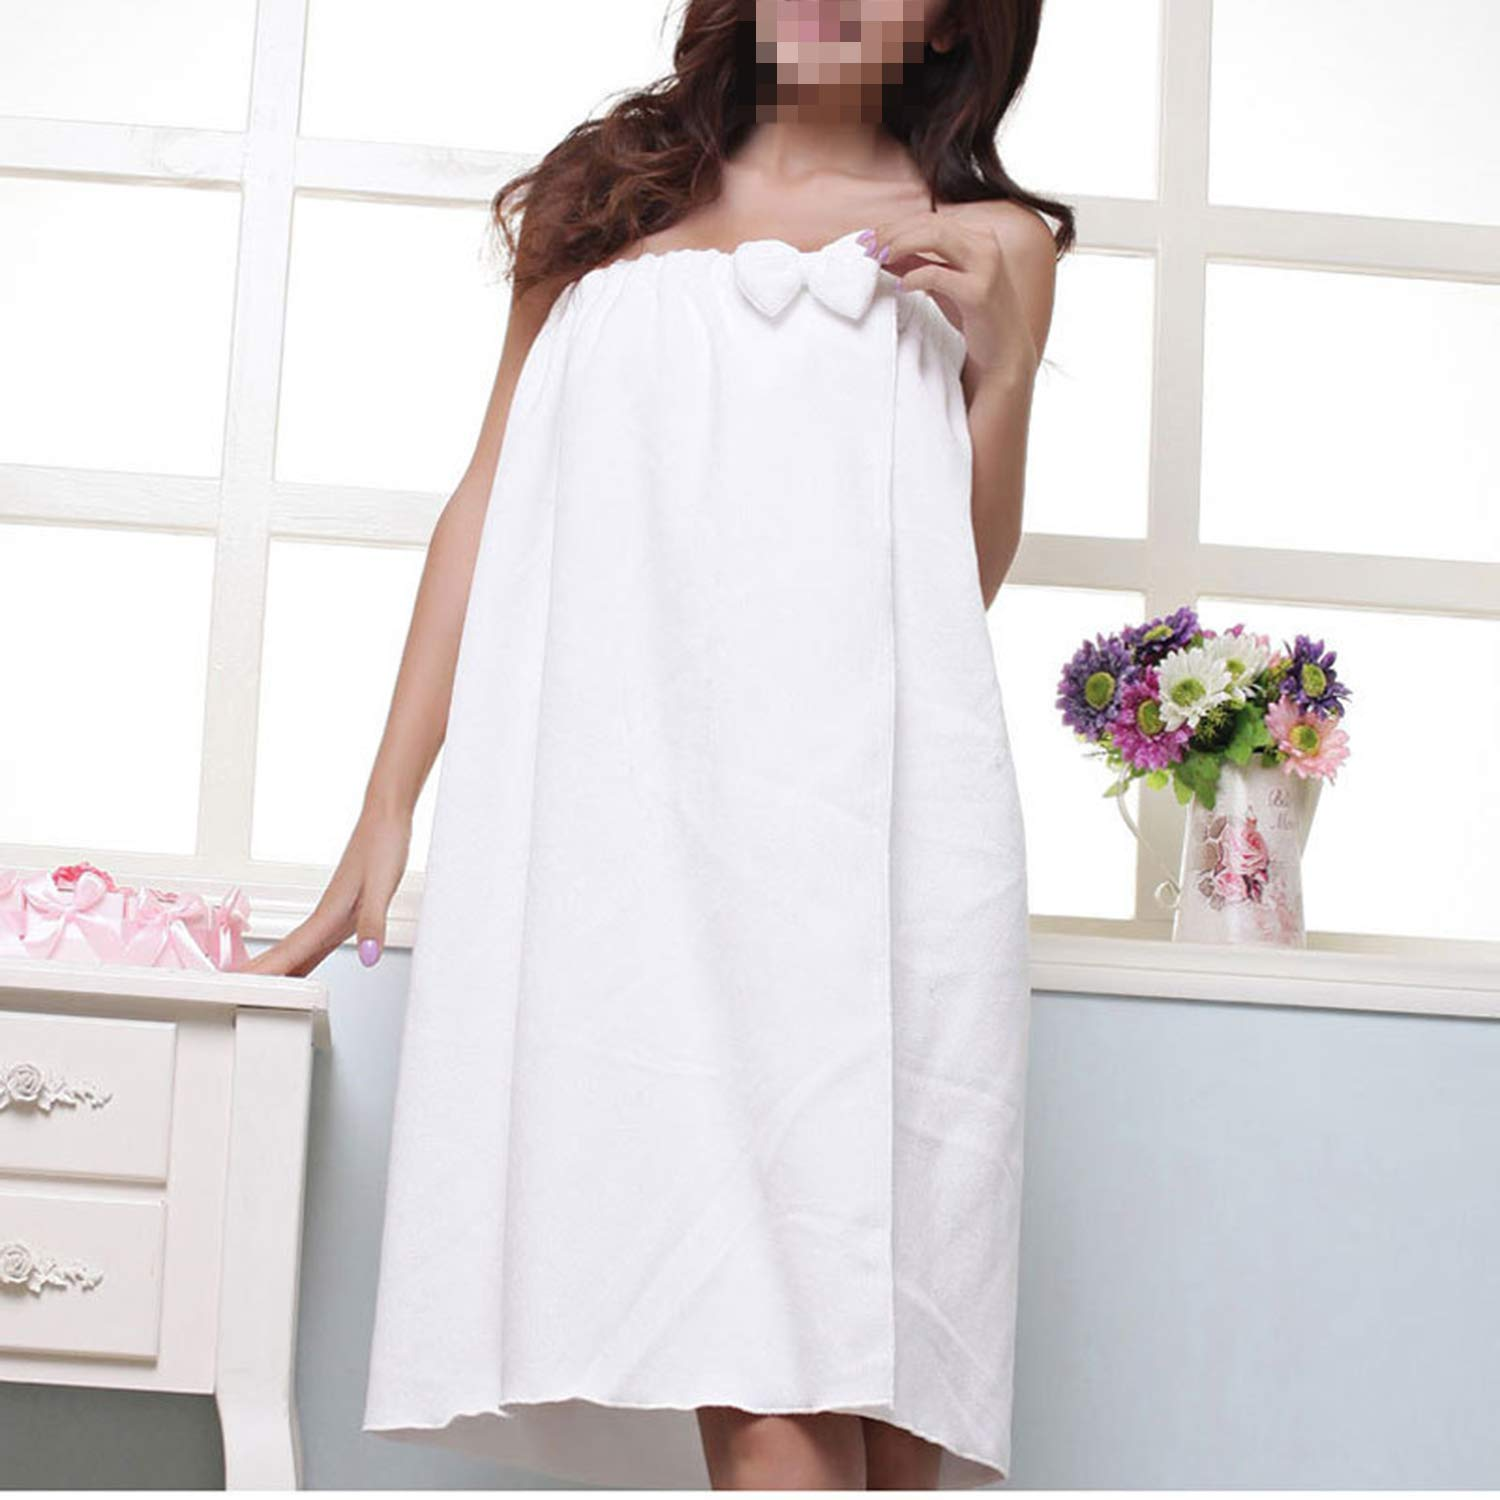 Solid Color Bathrobe, Simple Ladies Microfiber Bath Towel Tube Top Skirt Bathrobe, Suitable for Girls to Change Clothes in The Bathroom Beauty Salon White